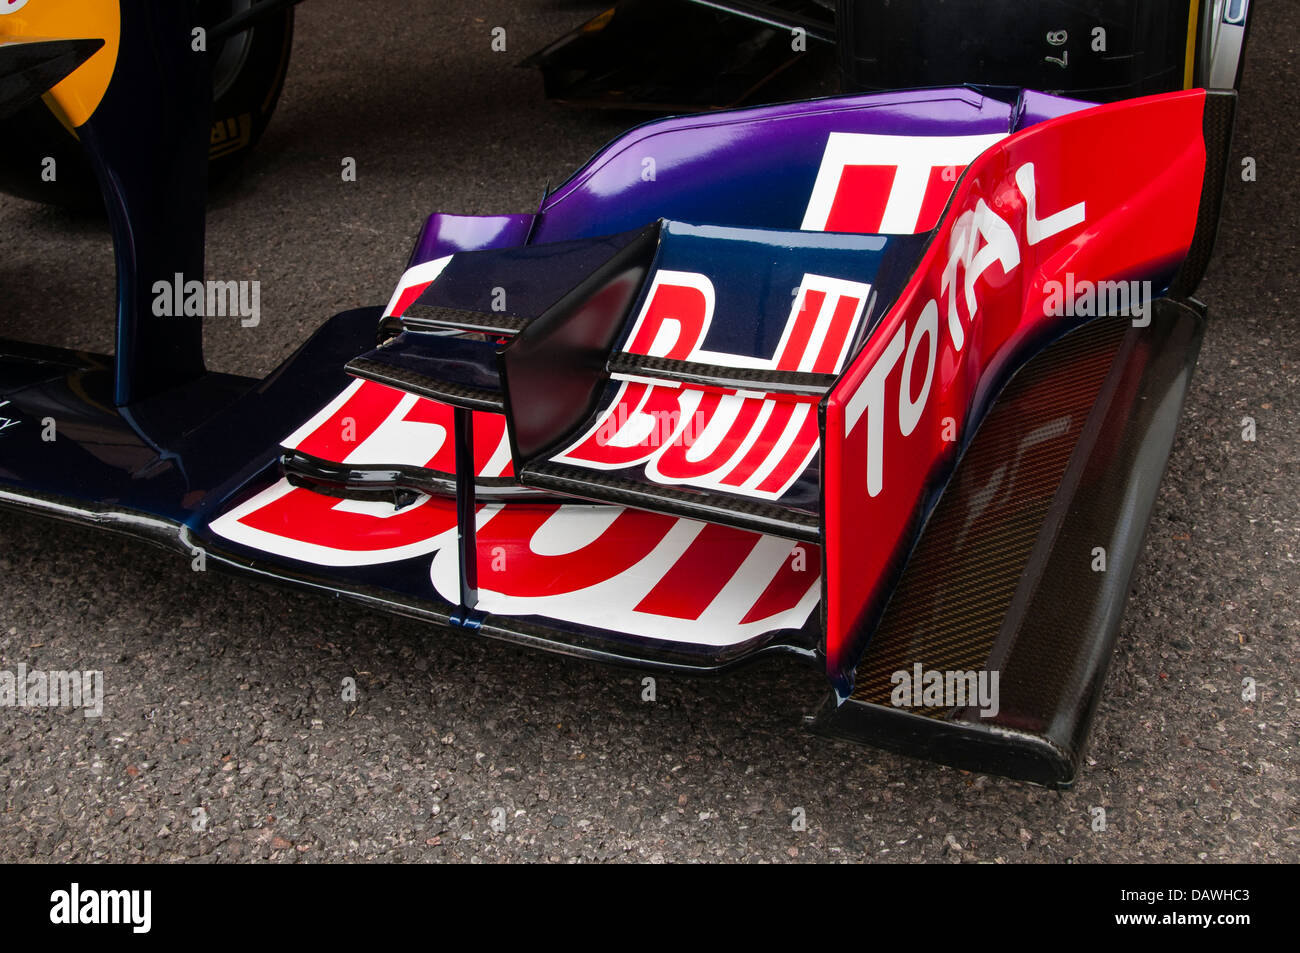 Red Bull RB9 Formula One Car - Stock Image